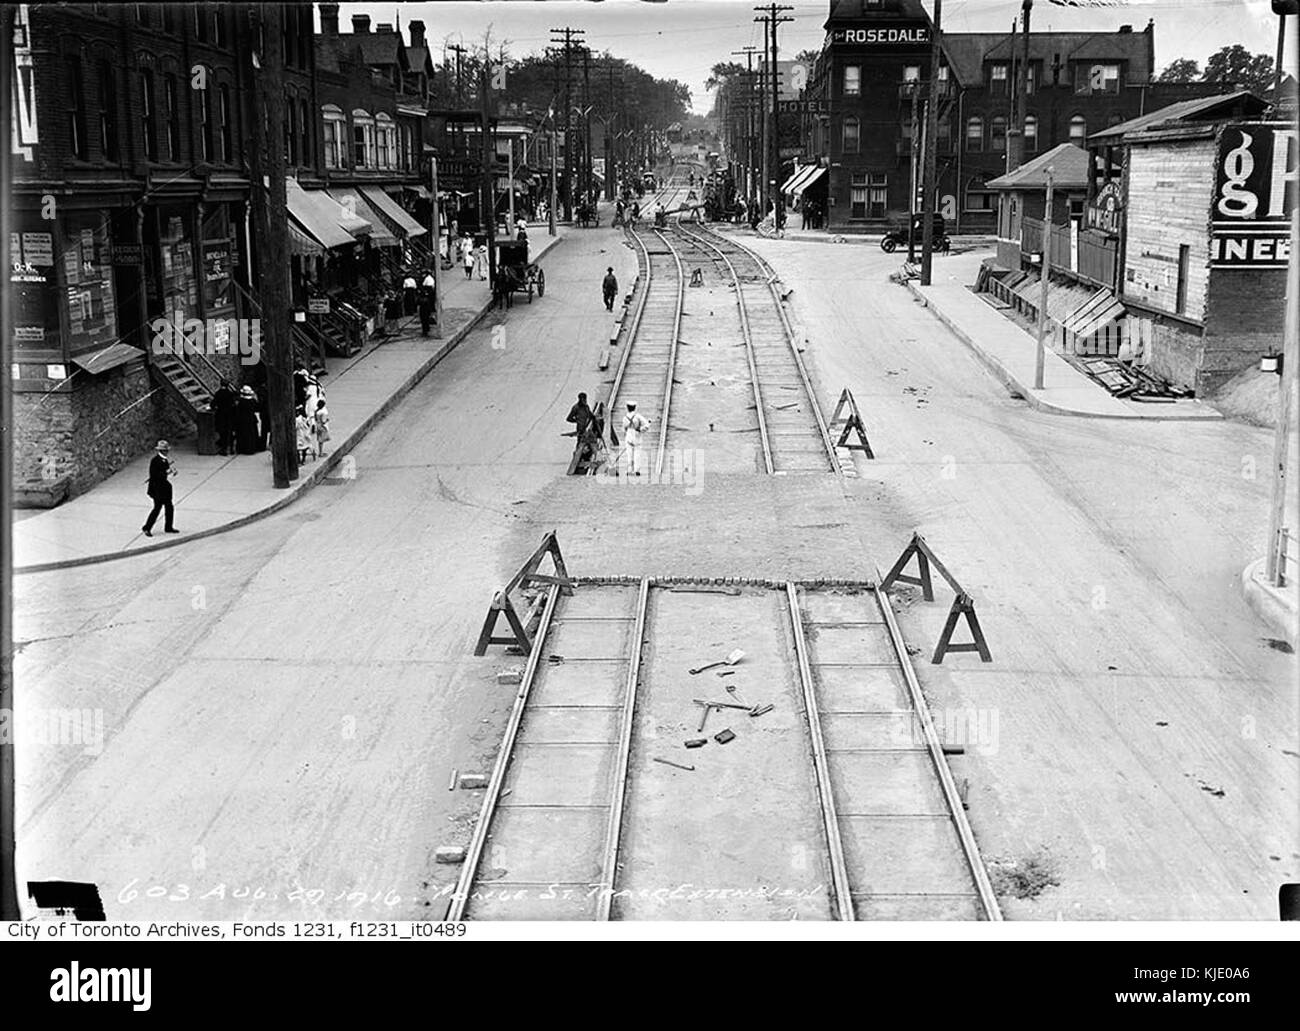 Yonge Street track extension looking north to Shaftesbury Avenue - Stock Image